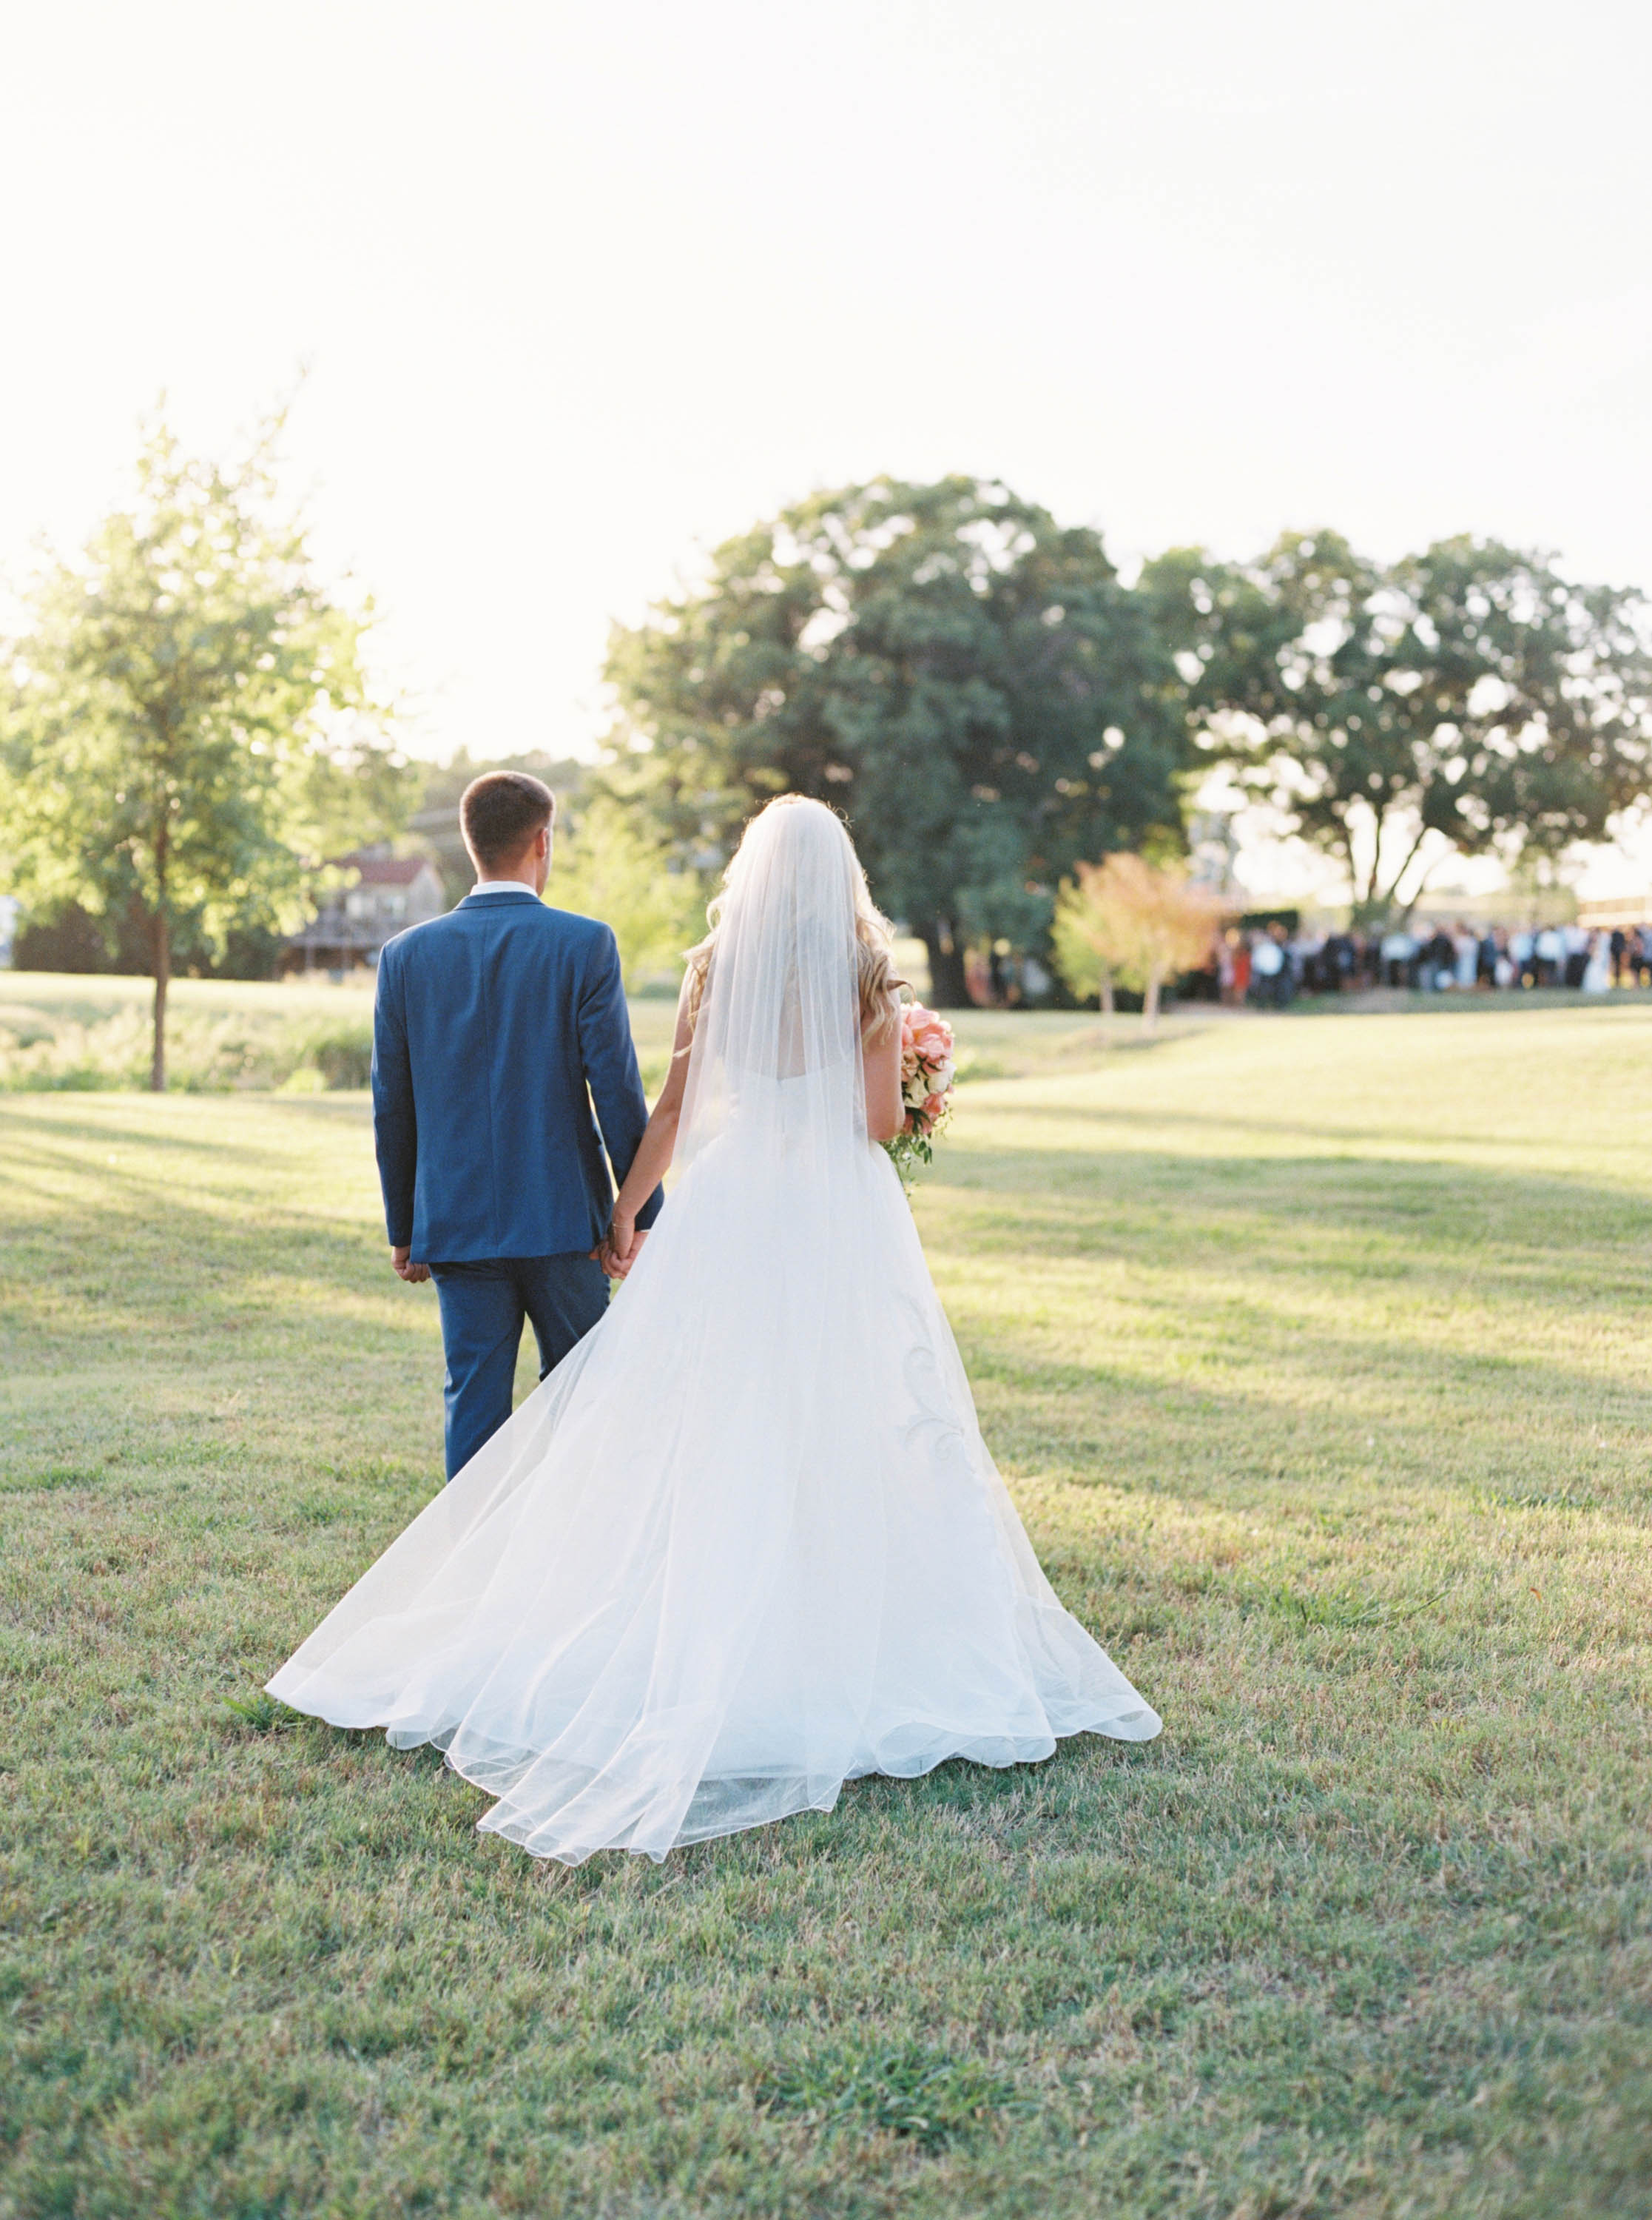 Lexi & Tyler Wedding - Shannon Skloss Photography-88.jpg